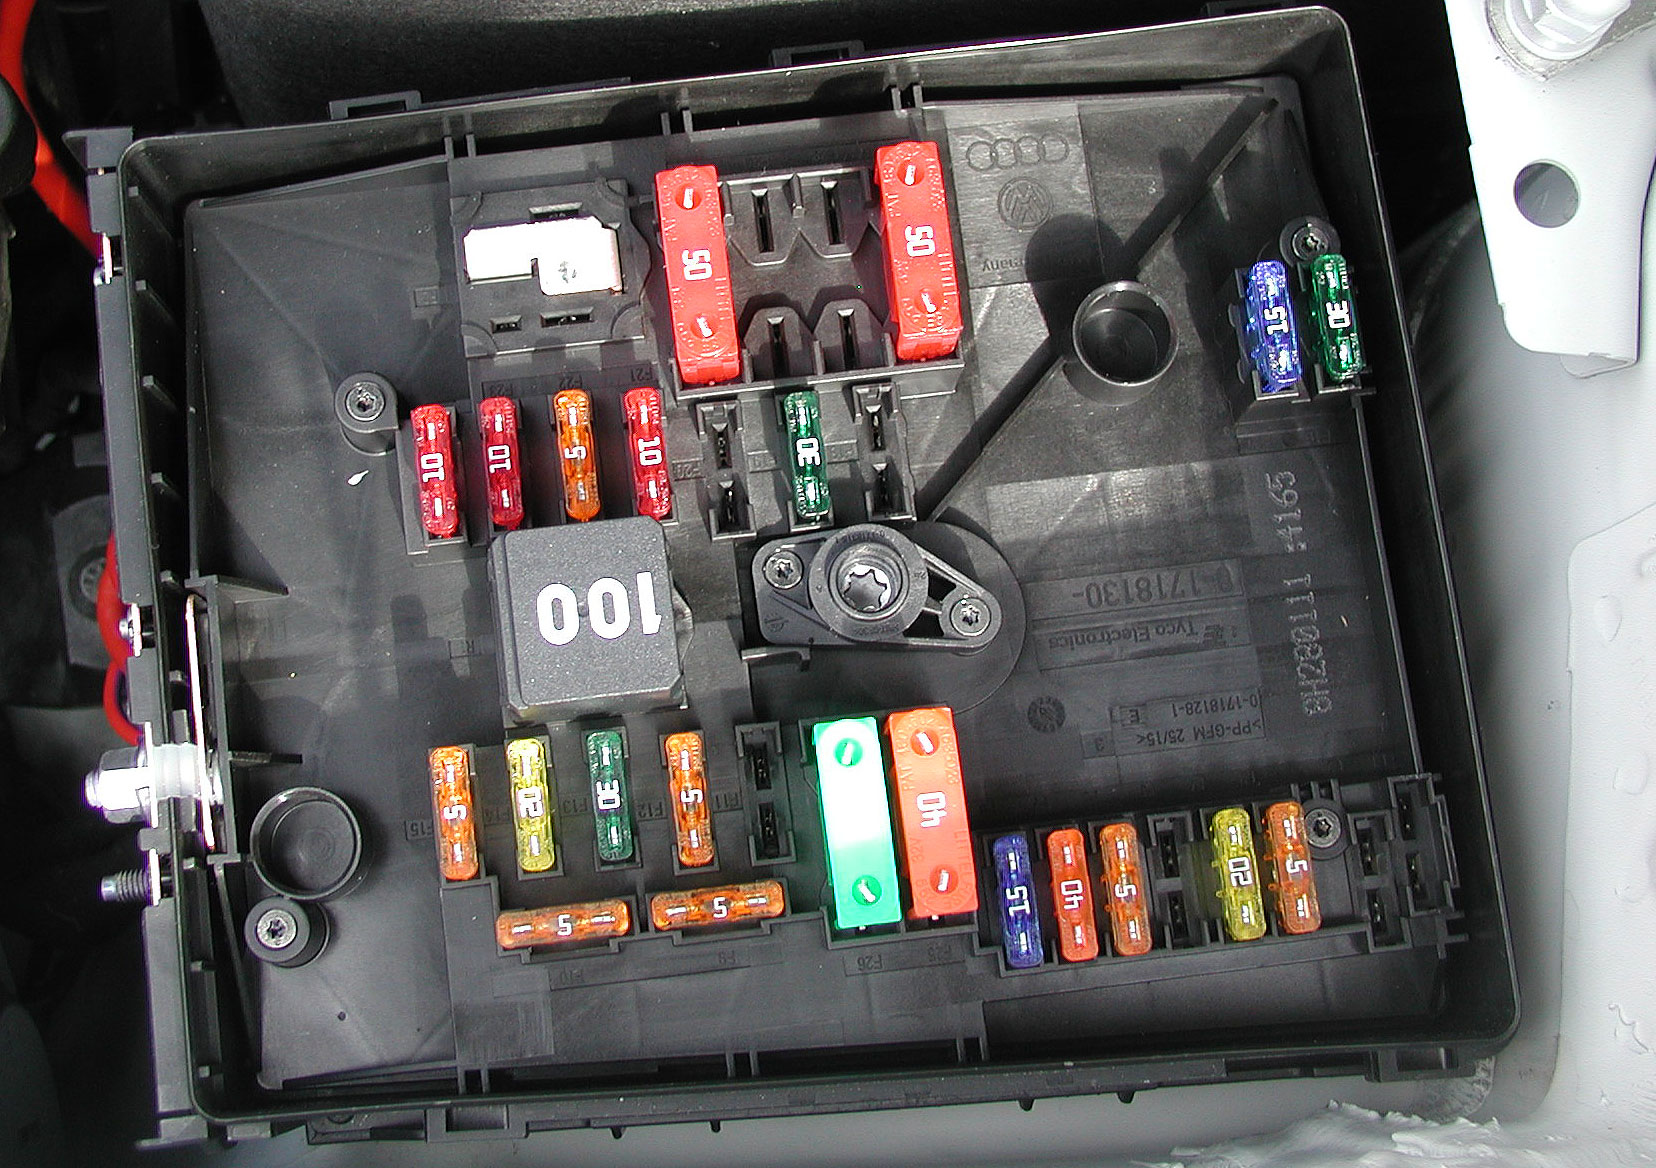 2011 golf tdi fuse box picture please tdiclub forums rh forums tdiclub com  2003 vw jetta tdi fuse box 2003 vw jetta tdi fuse box